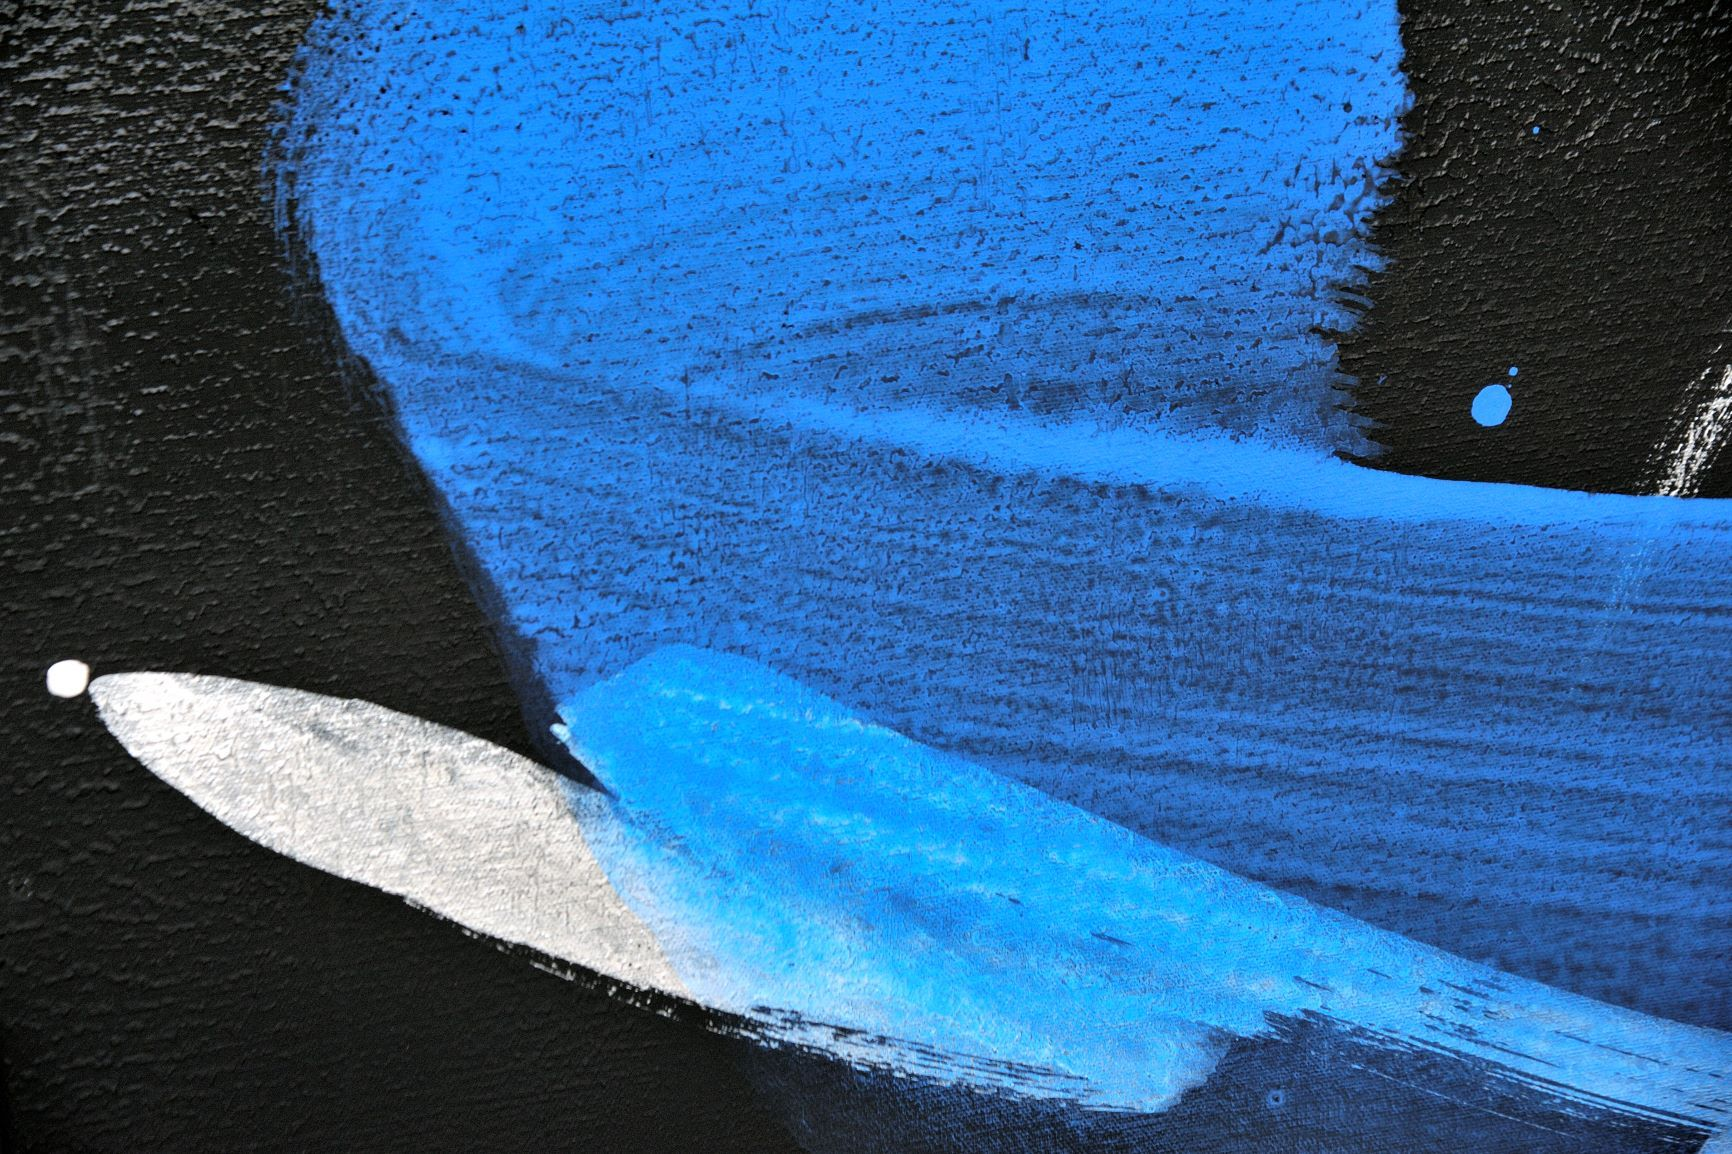 Contemporary painting - Hachiro Kanno - Permanescence TN694 T - detail 2